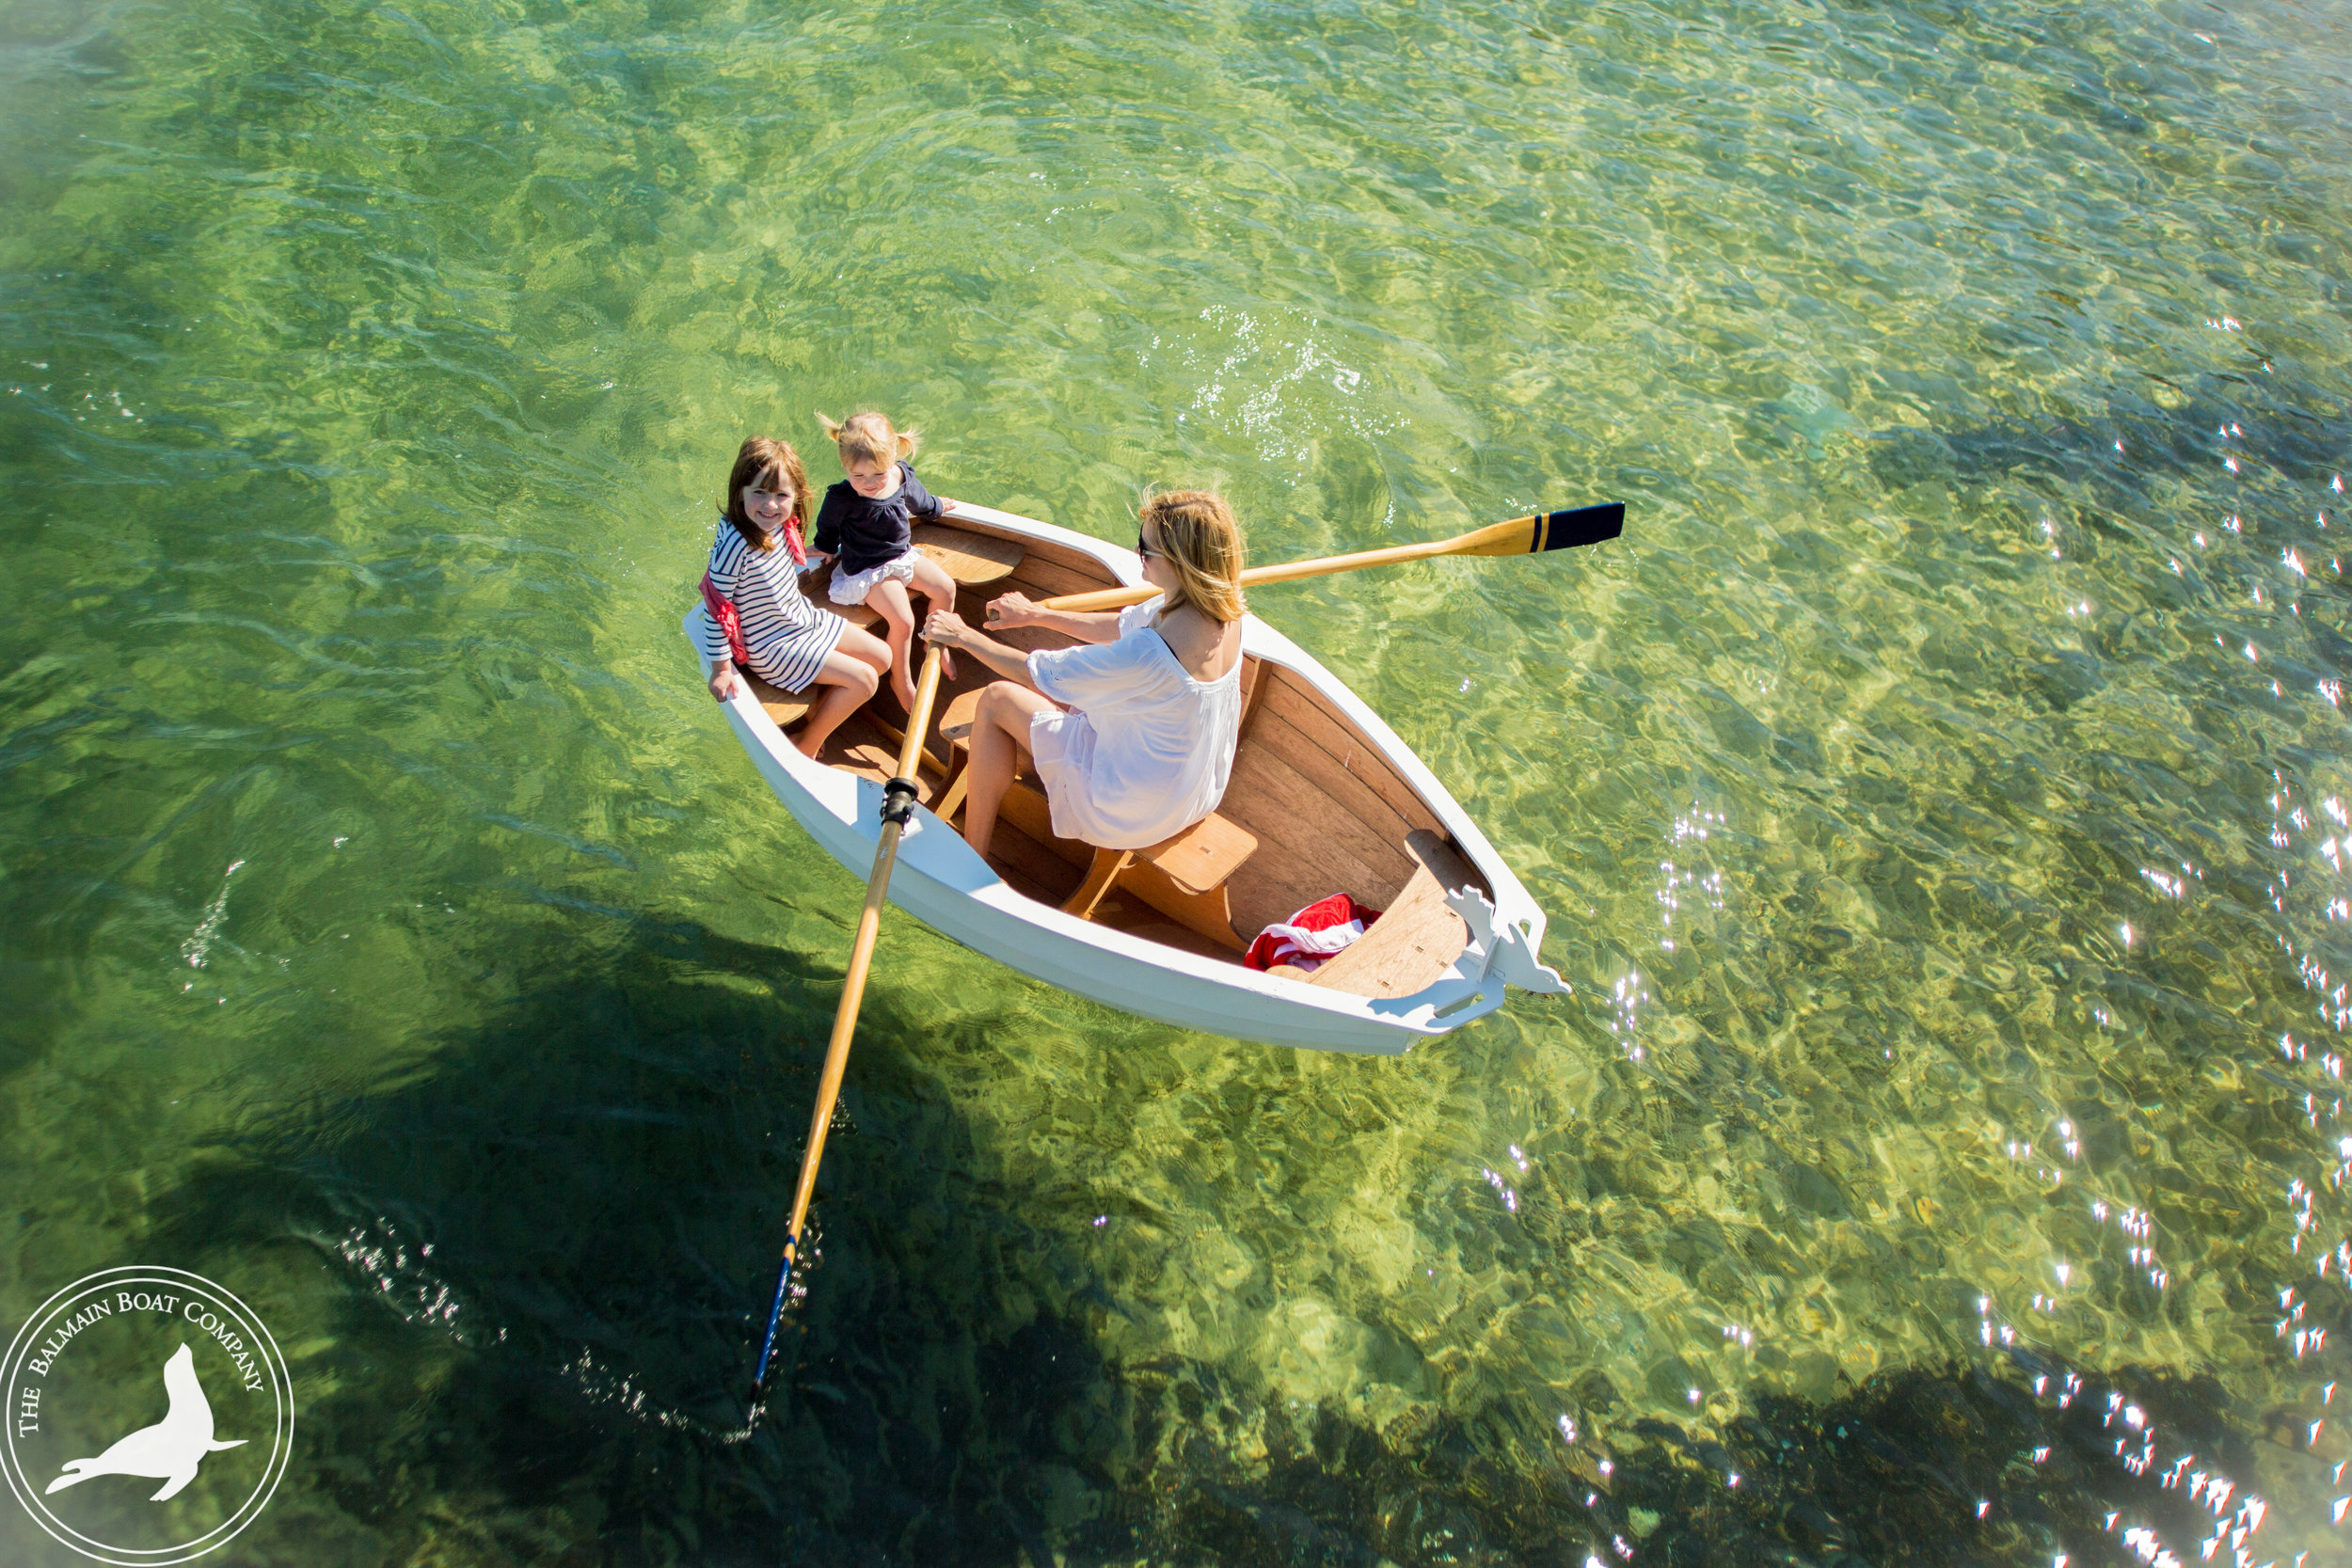 Rowboat Kit -